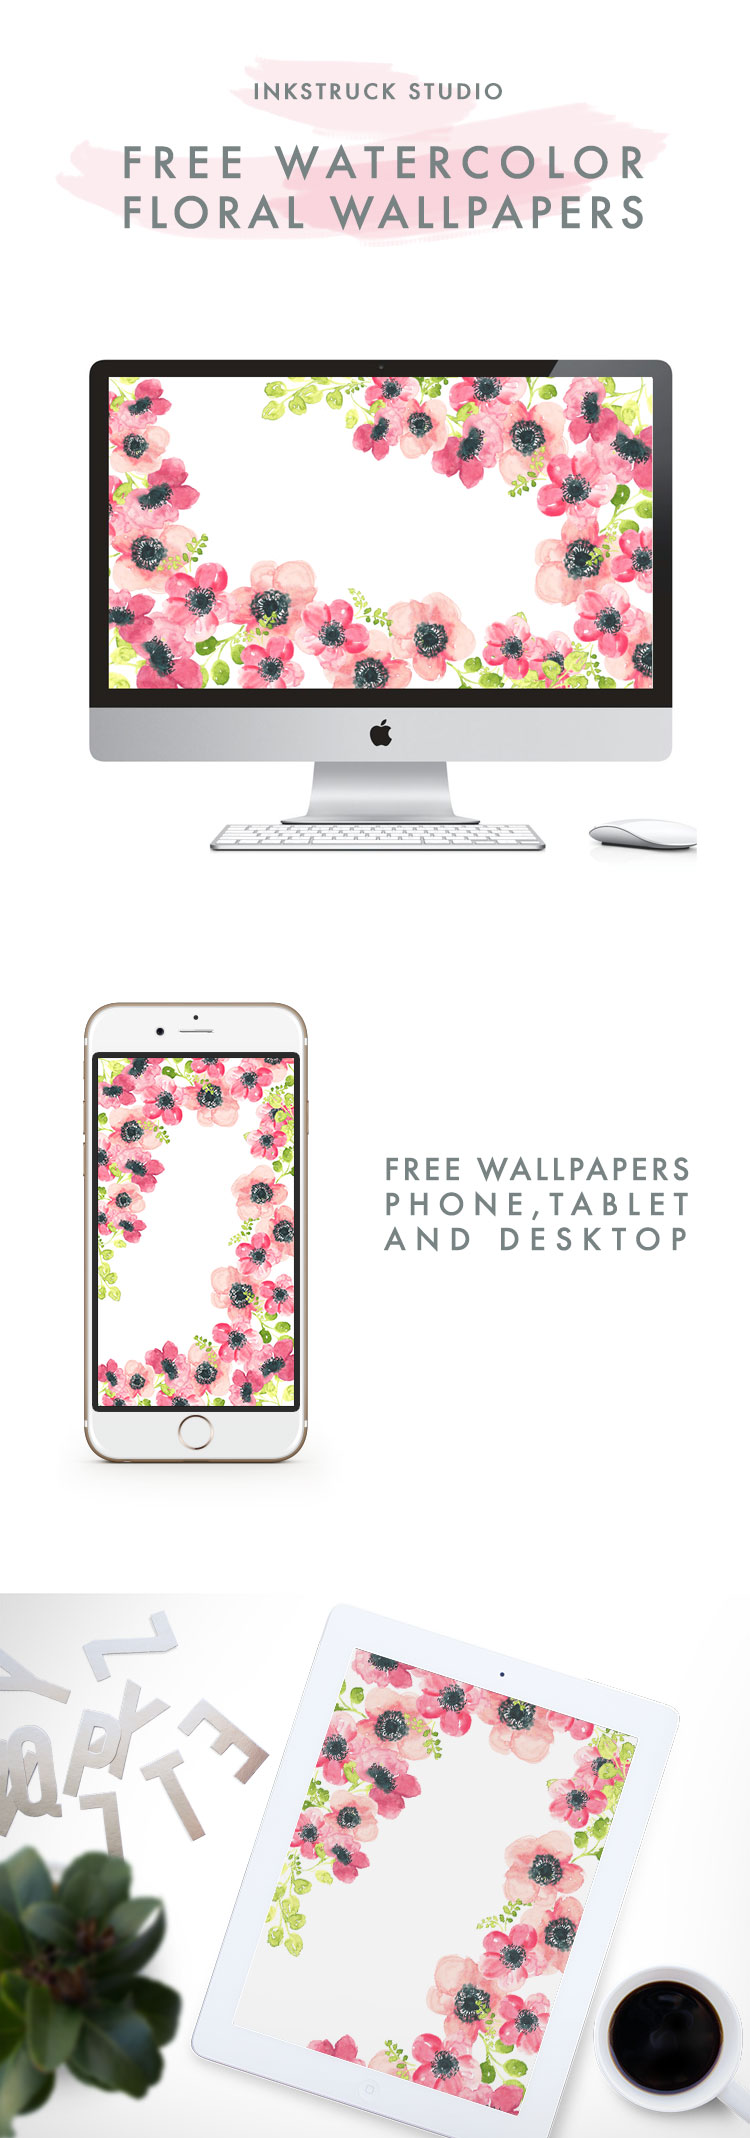 Free watercolor floral wallpapers to pretty up your desktop,phone and tablet- Zakkiya Hamza | Inkstruck Studio